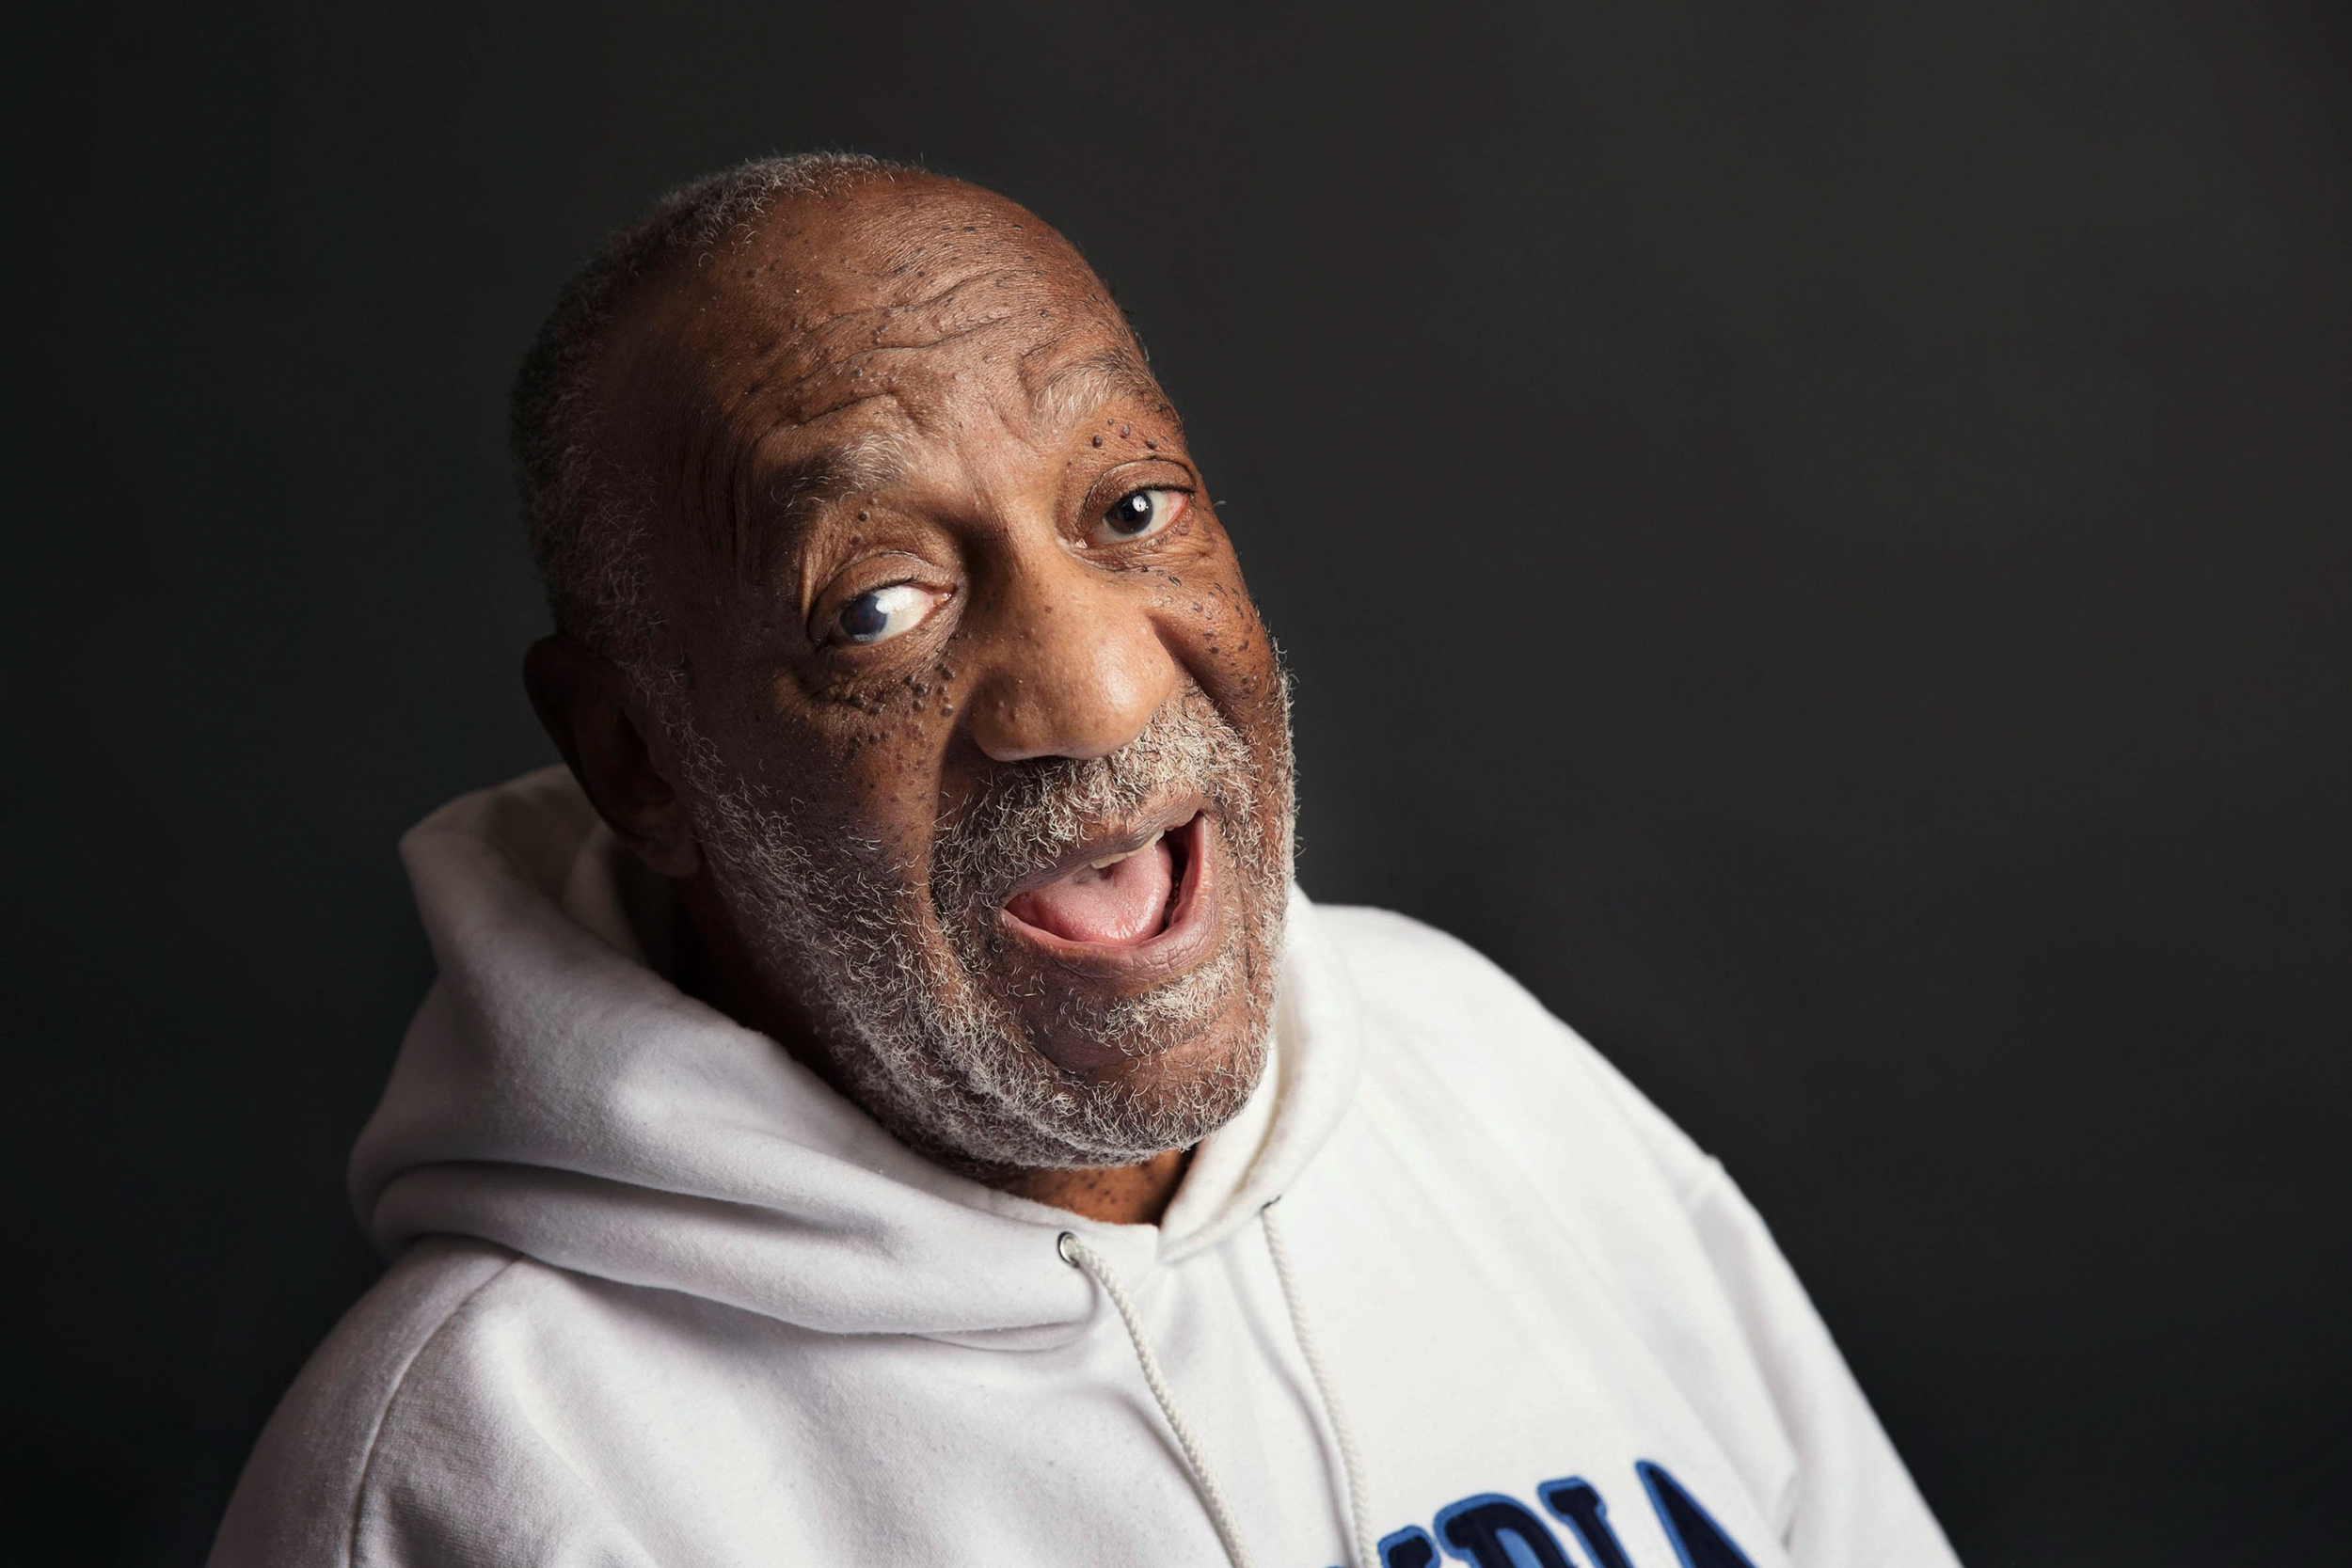 bill-cosby-netflix-exclusive-stand-up-special.jpg